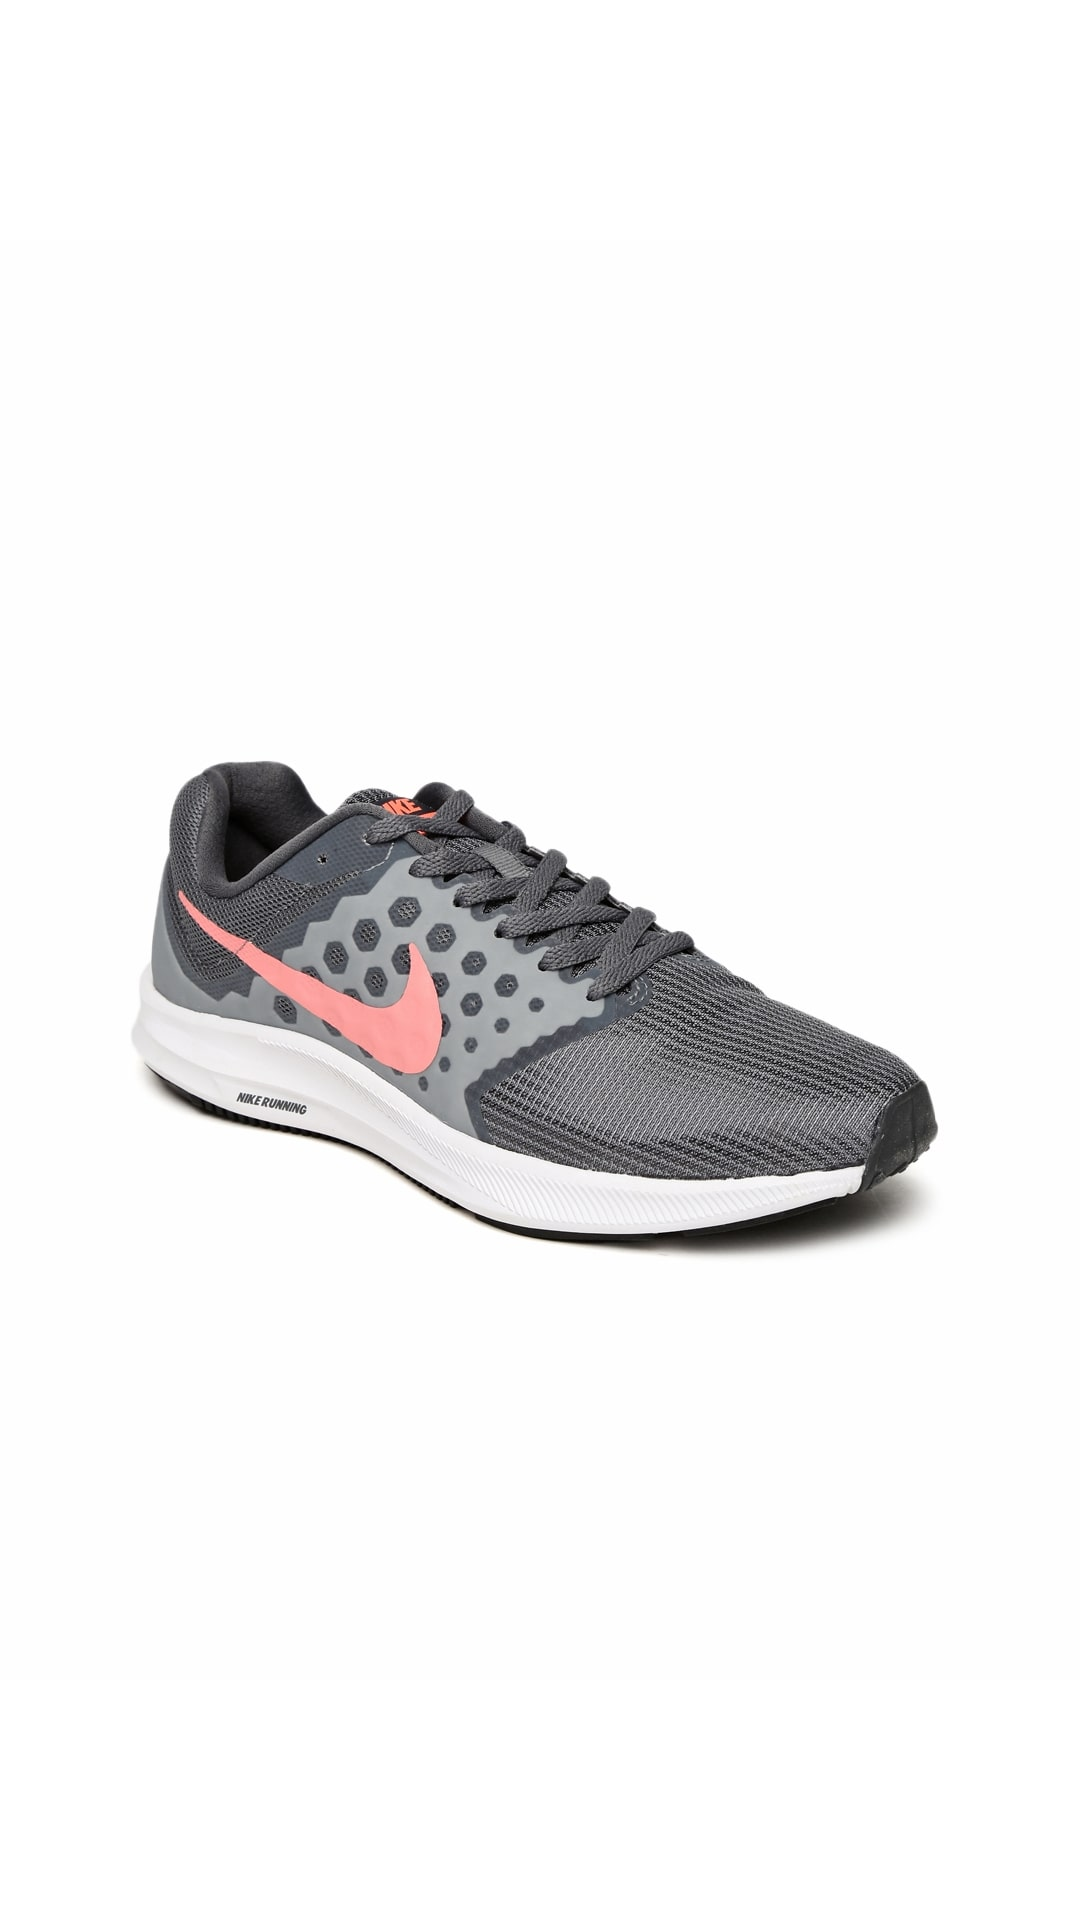 273ed4afebd Sports Shoes for Women - Buy Ladies Sports and Running Shoes Online at  Paytm Mall